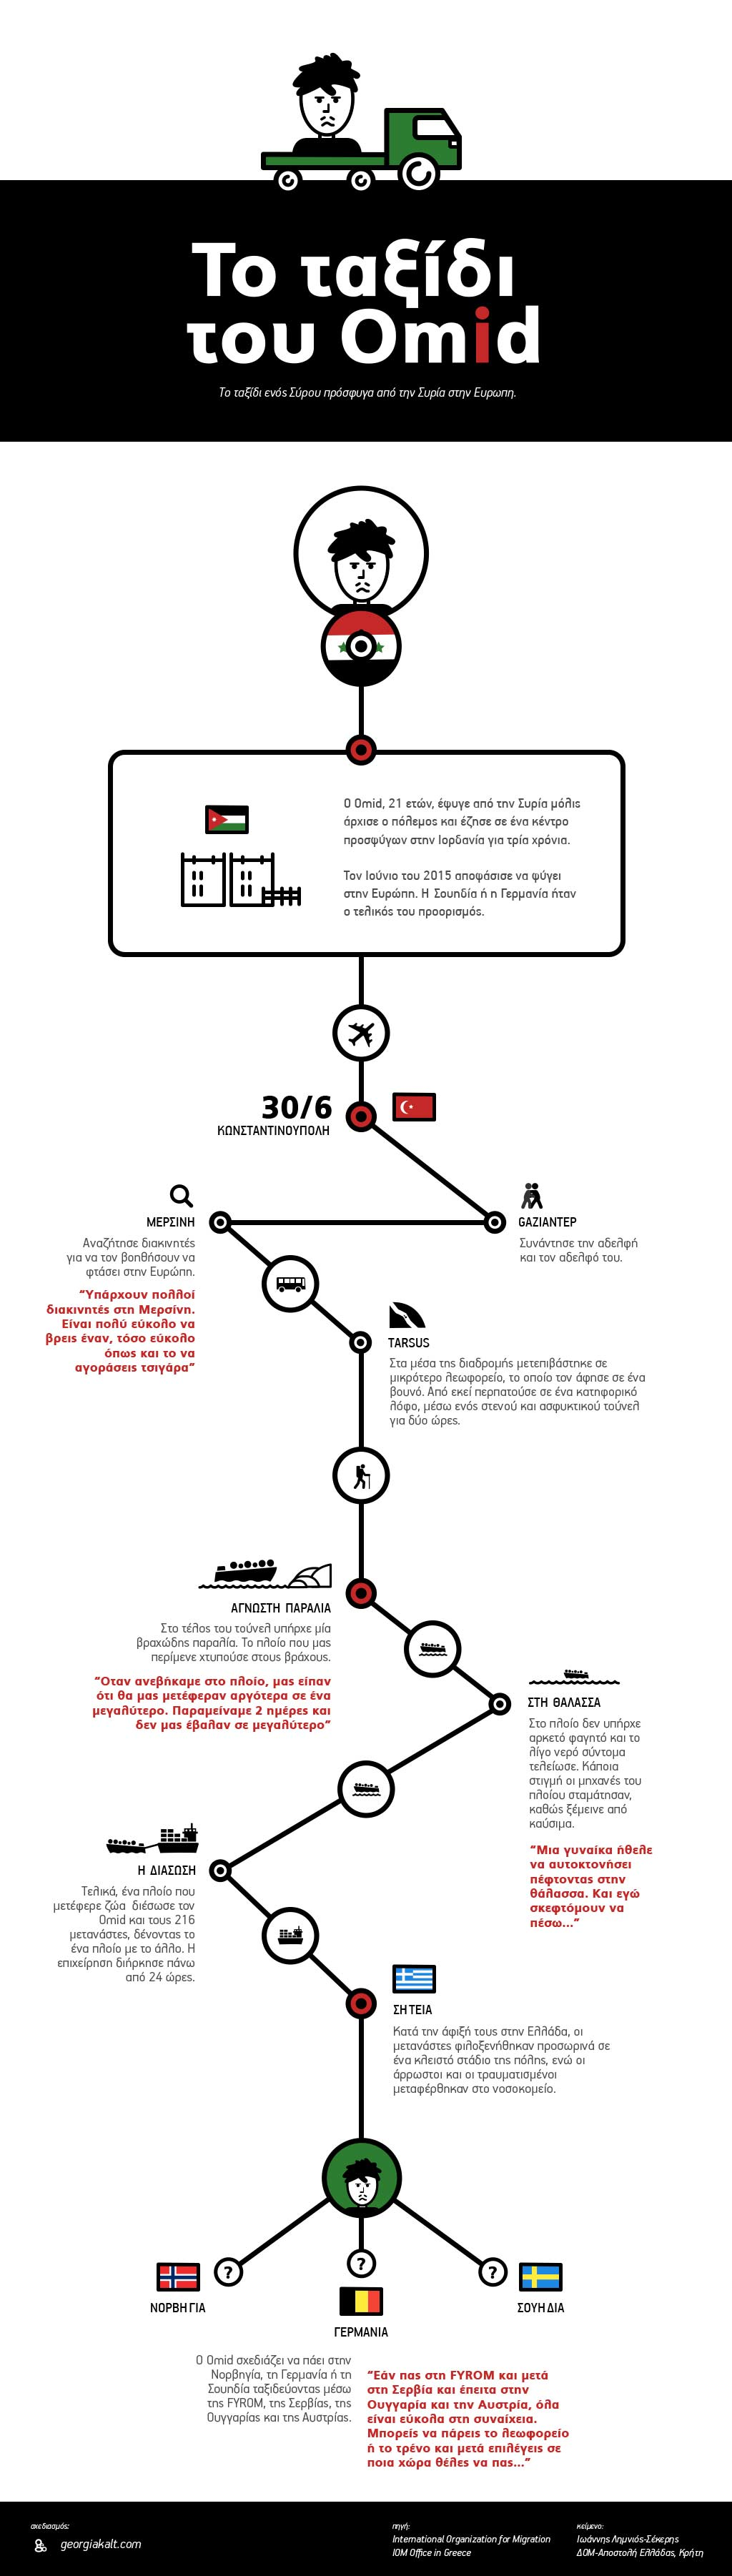 omid's-journey_infographic_by_georgia_kalt_2_big